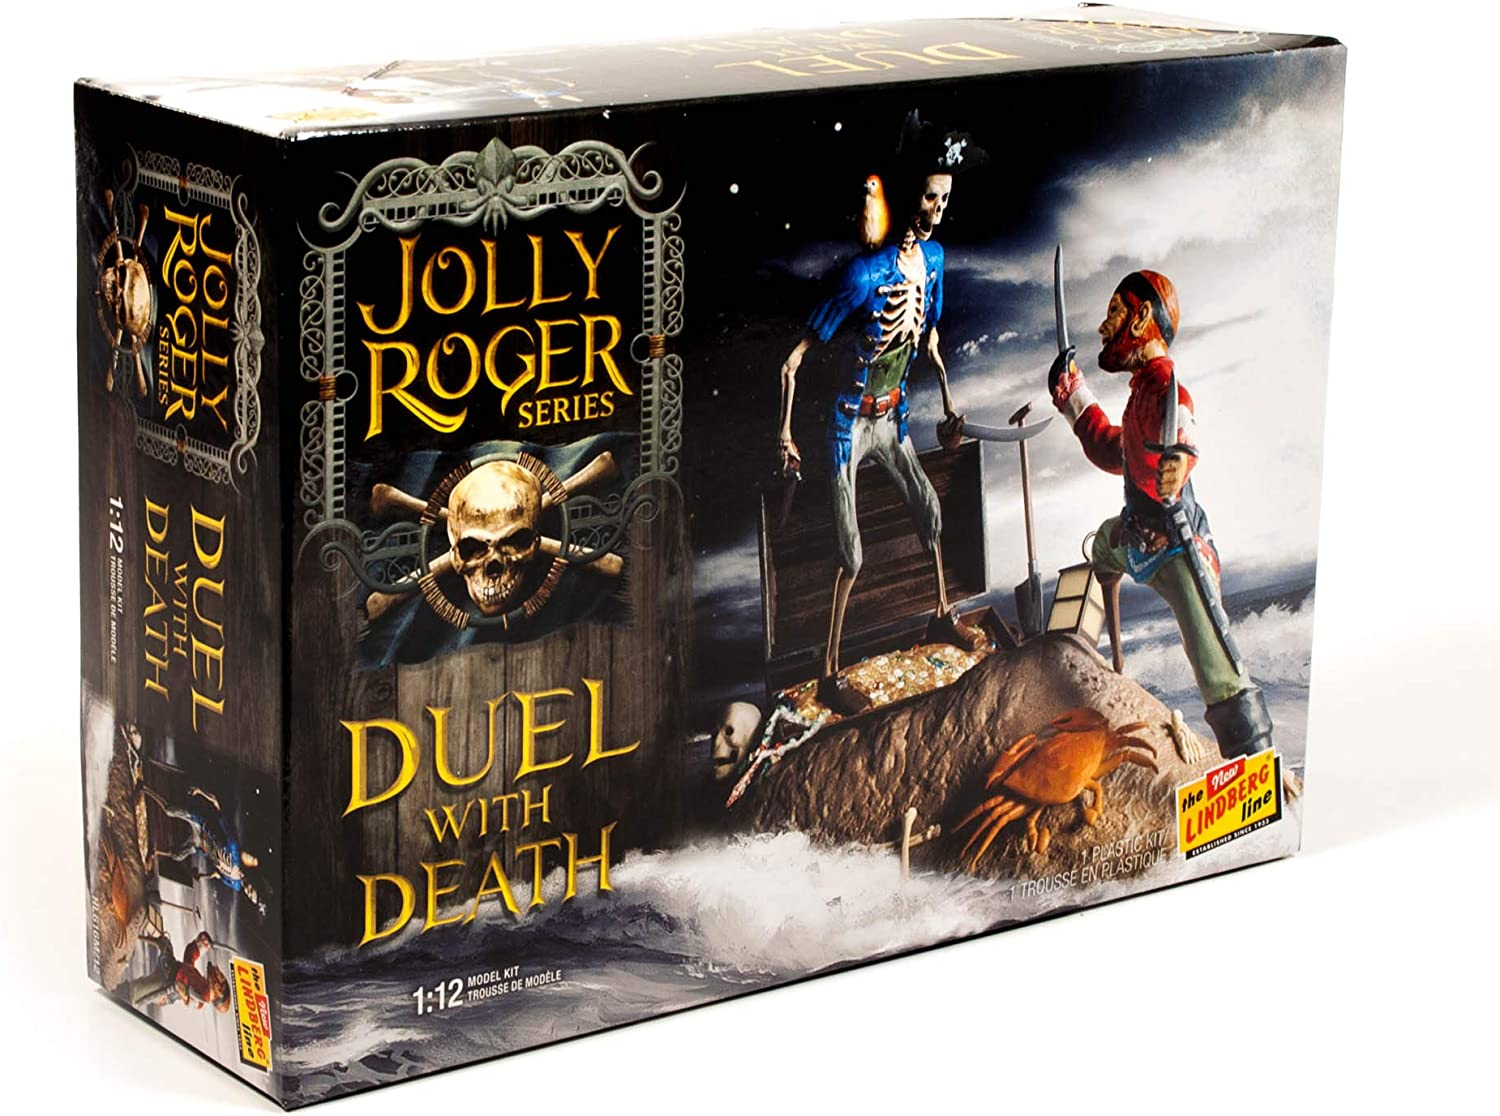 LINDBERG Jolly Roger Series: Duel with Death 1:12 Scale Model Kit Diorama